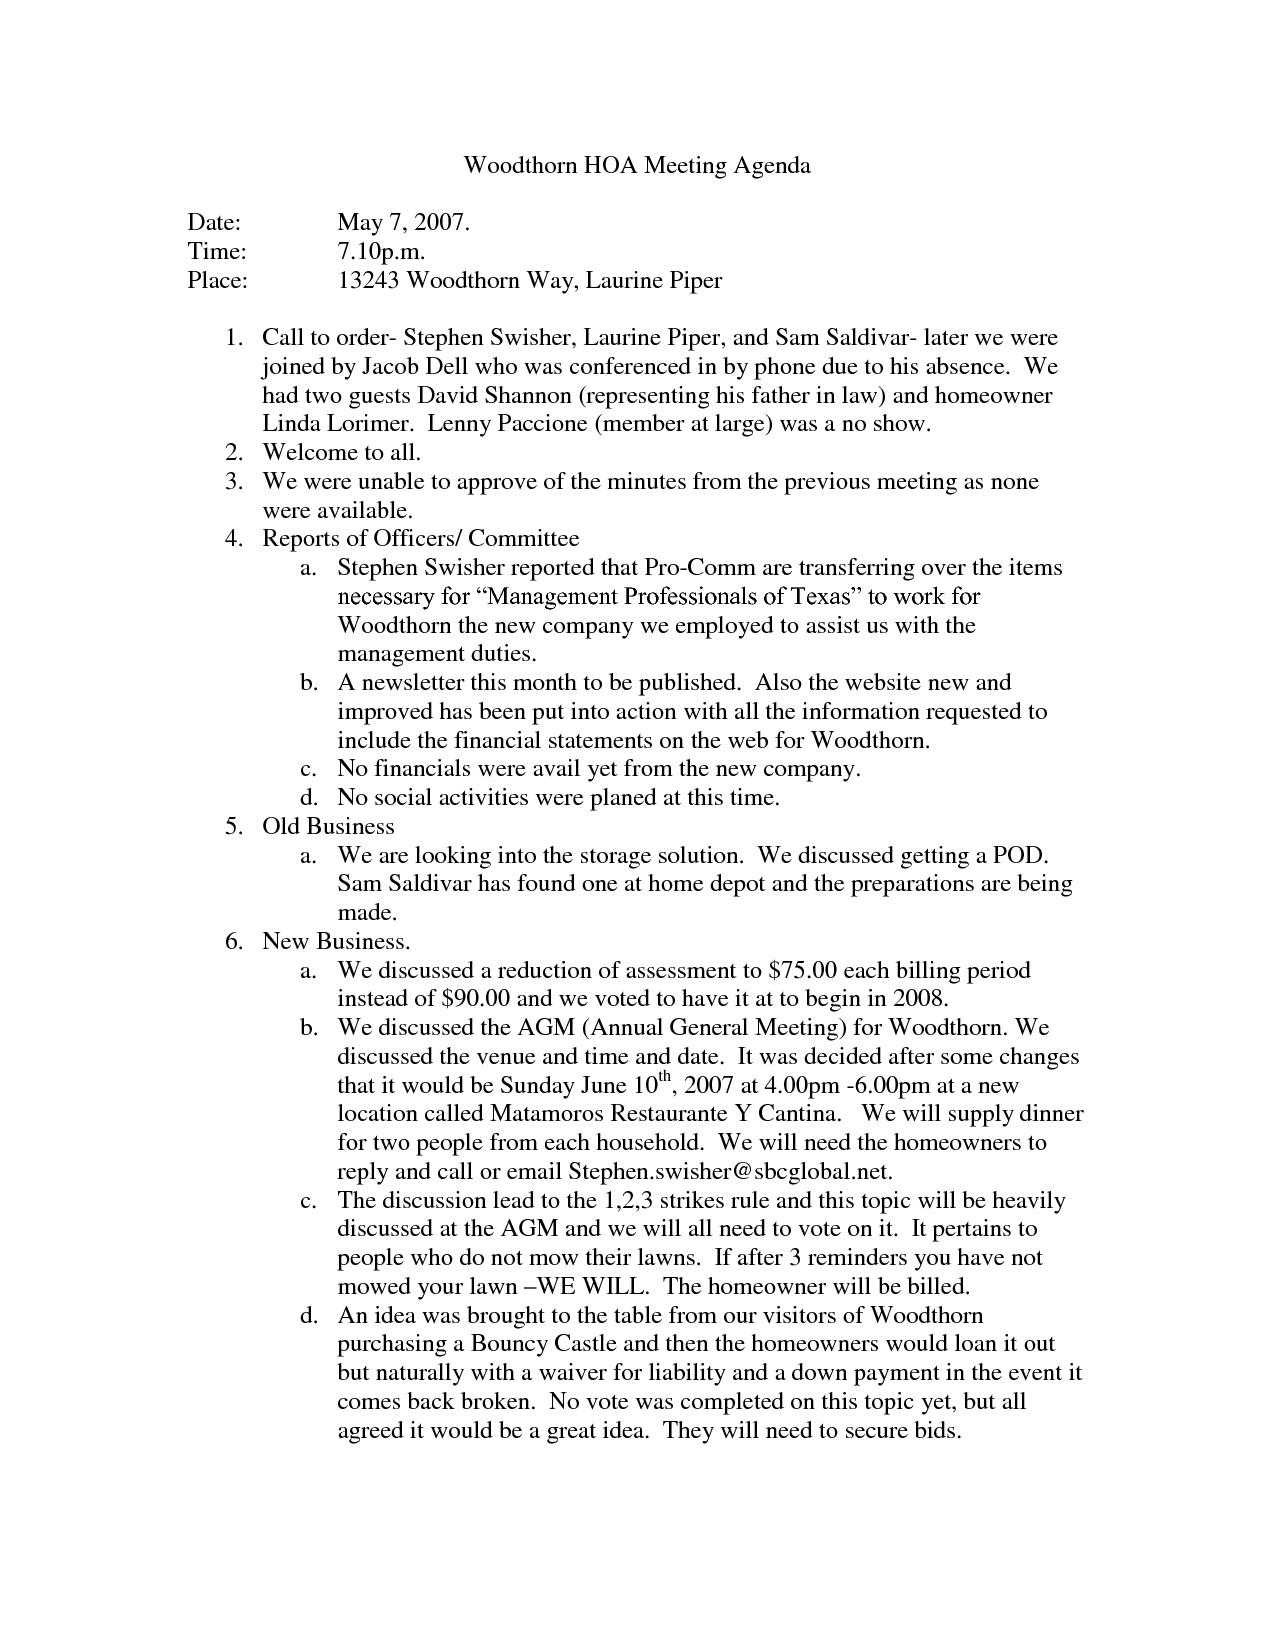 Hoa Meeting Minutes Template Best S Of Annual Board Meeting Template Staff